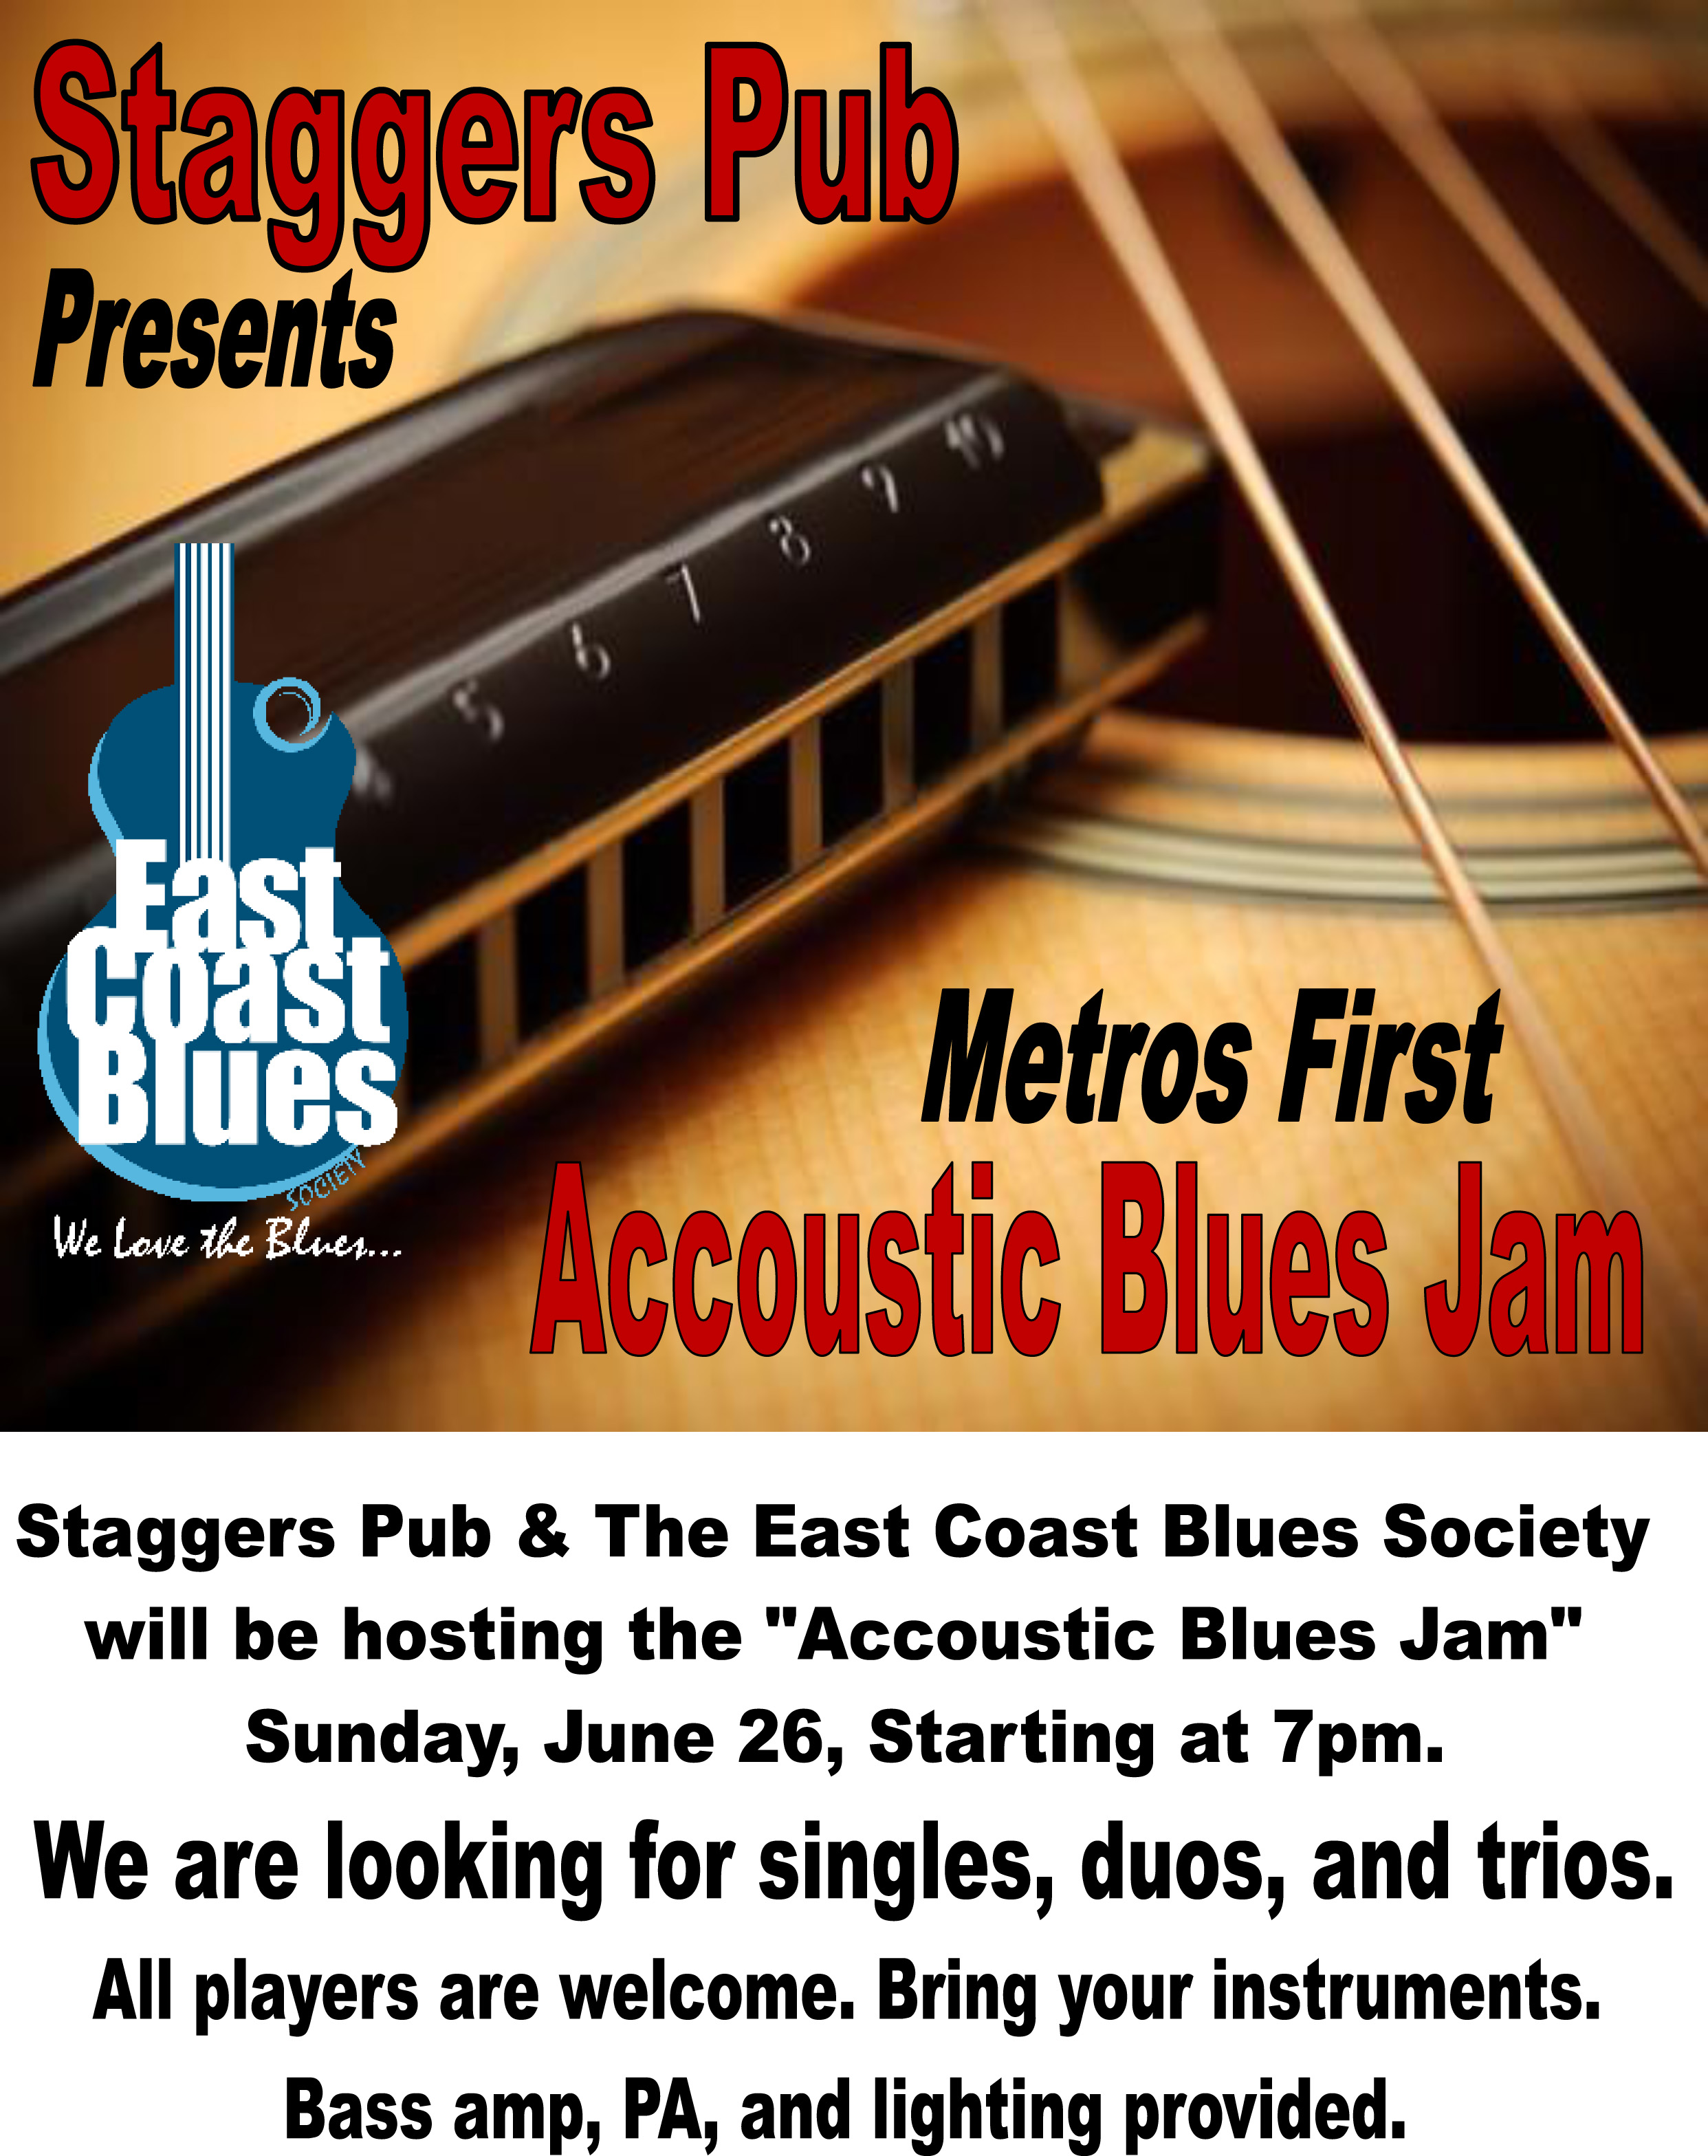 ECBS presents Acoustic Blues Jam on June 26 at 7pm at Staggers Pub in Dartmouth. Host: Mark Raven